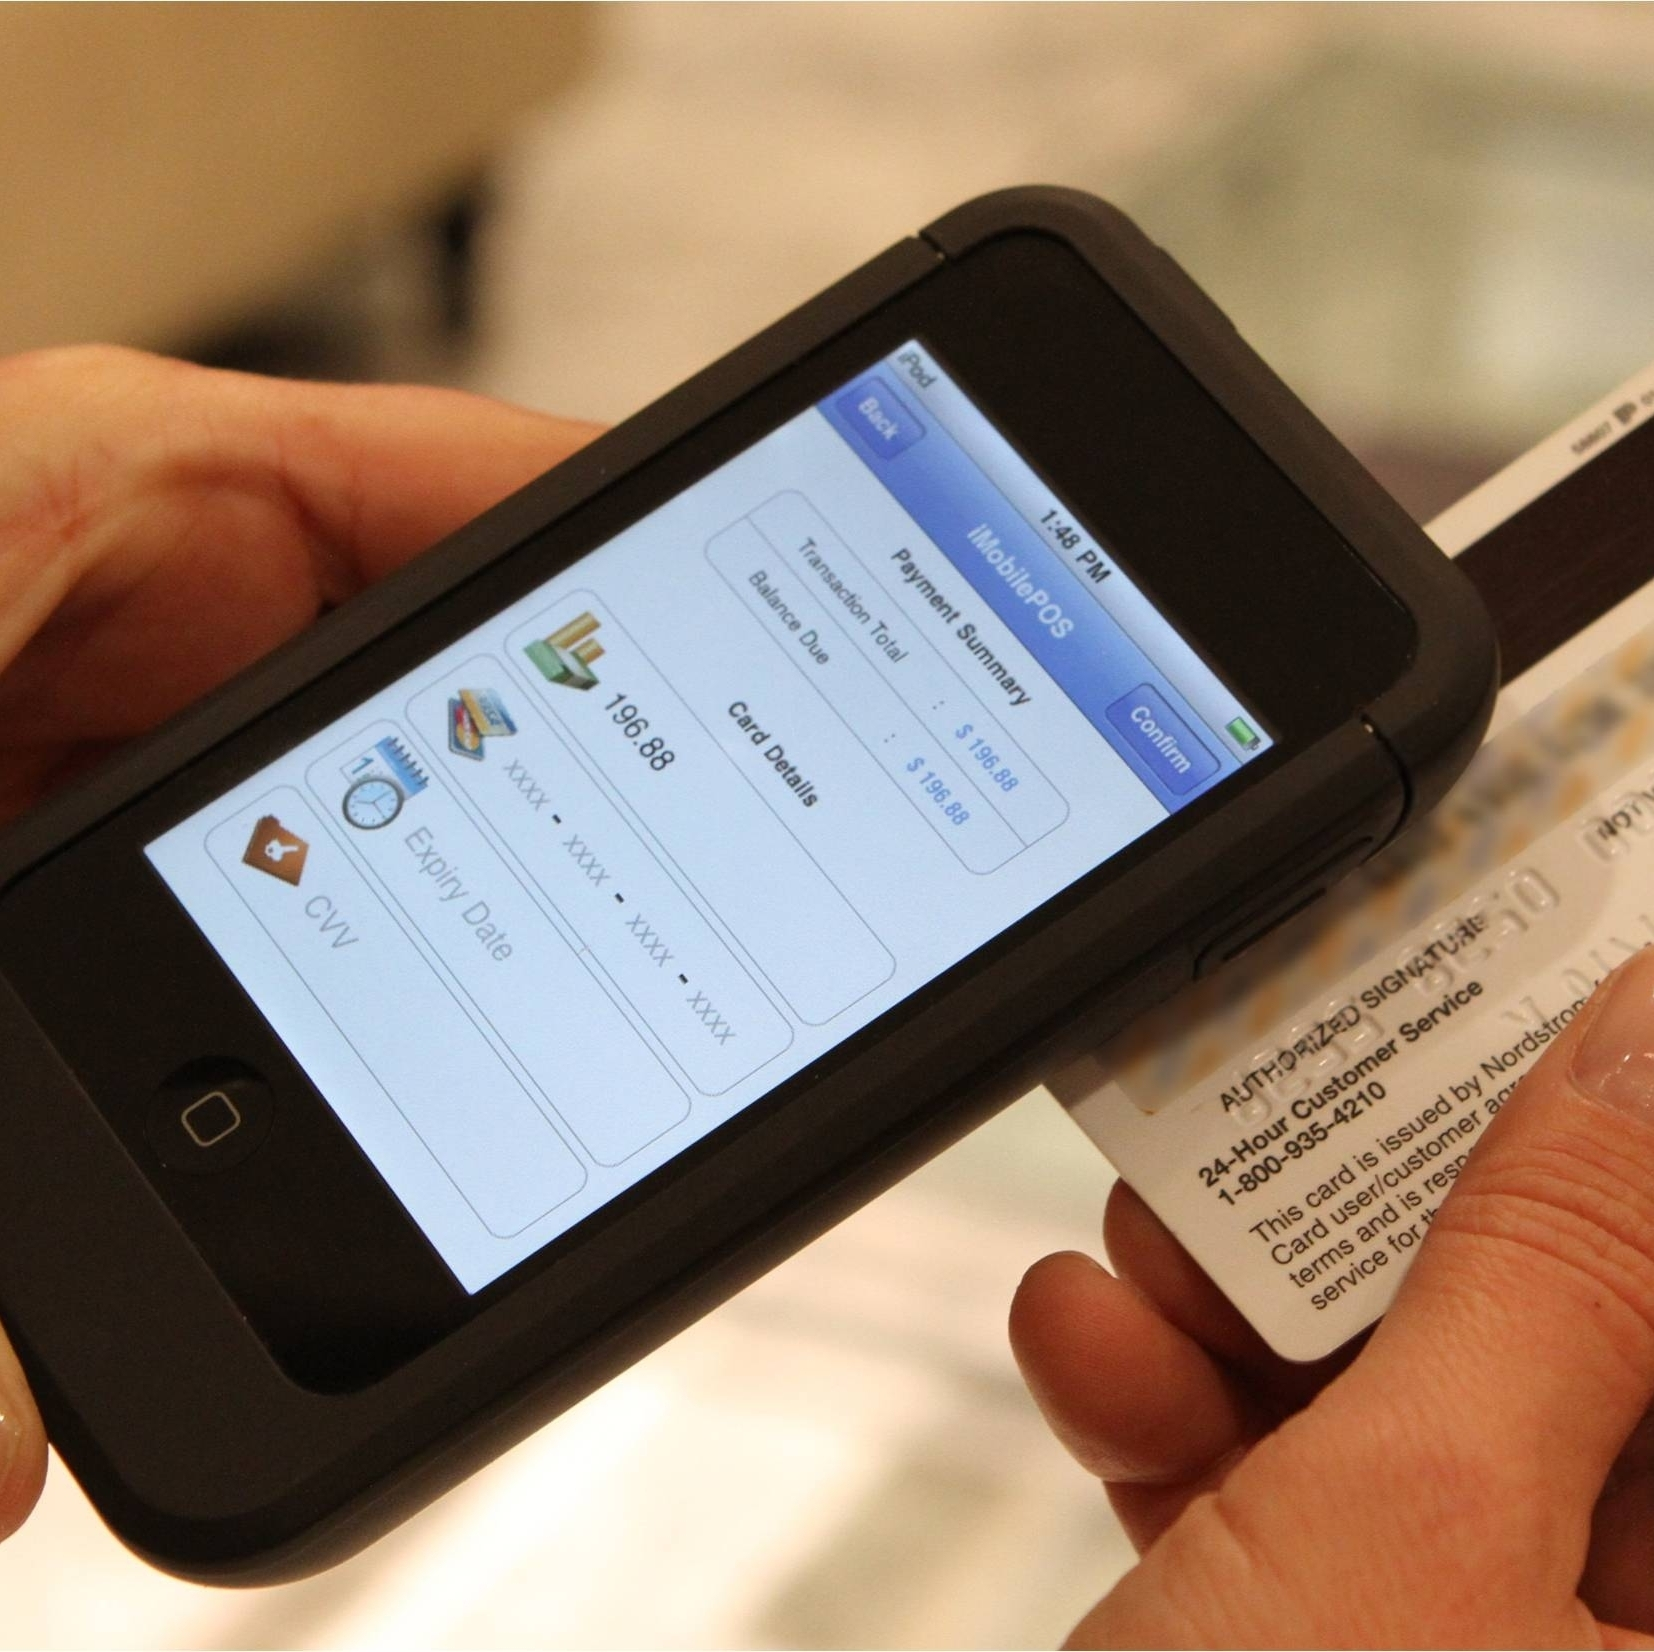 More stores are processing instant payments using mobile devices, enabling customers to bypass the checkout counter.